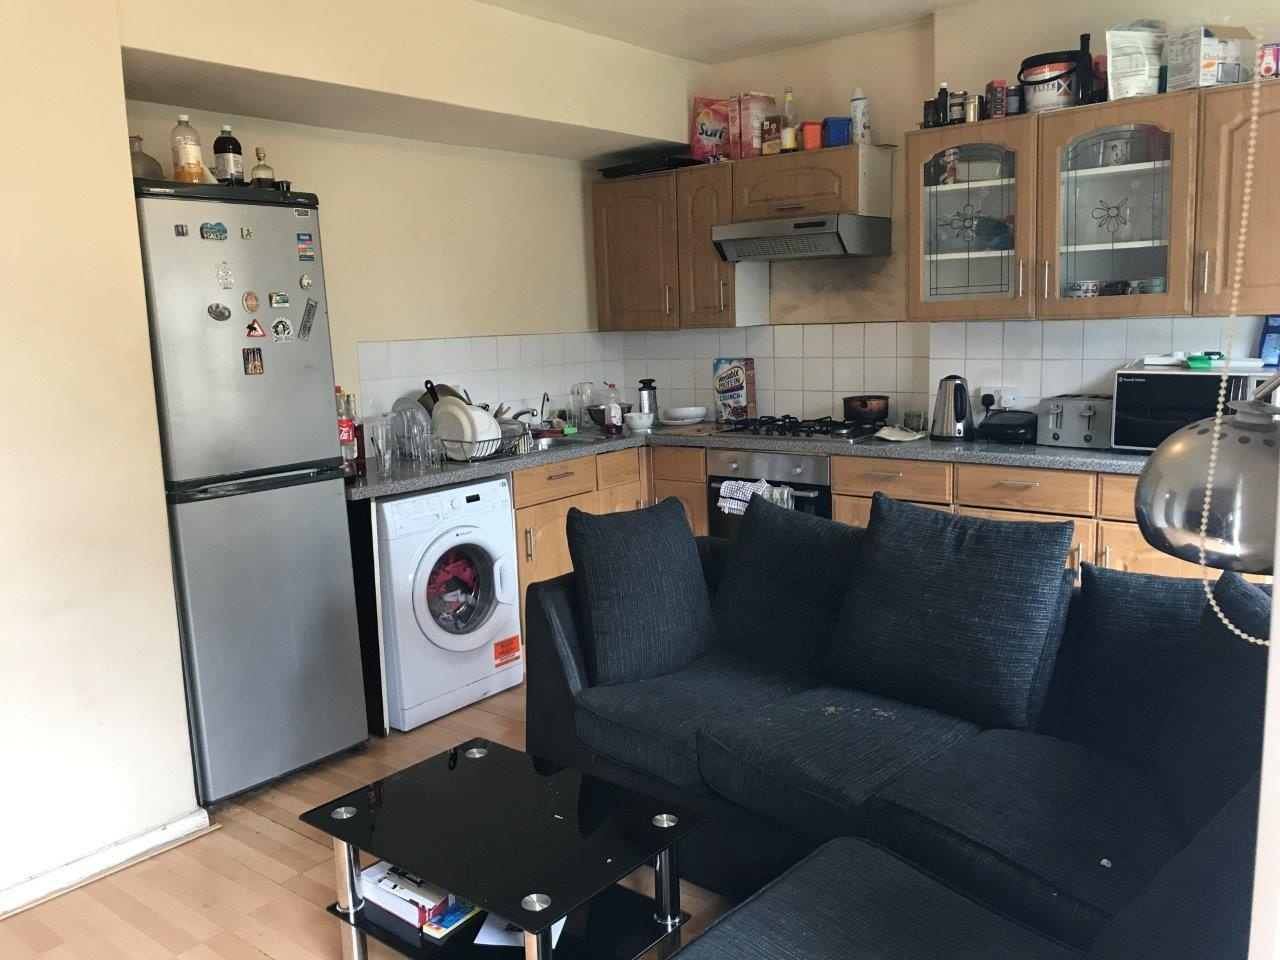 Clapham Common4 - 4 Bed Flat, Grover House, SW4 - To Rent ...